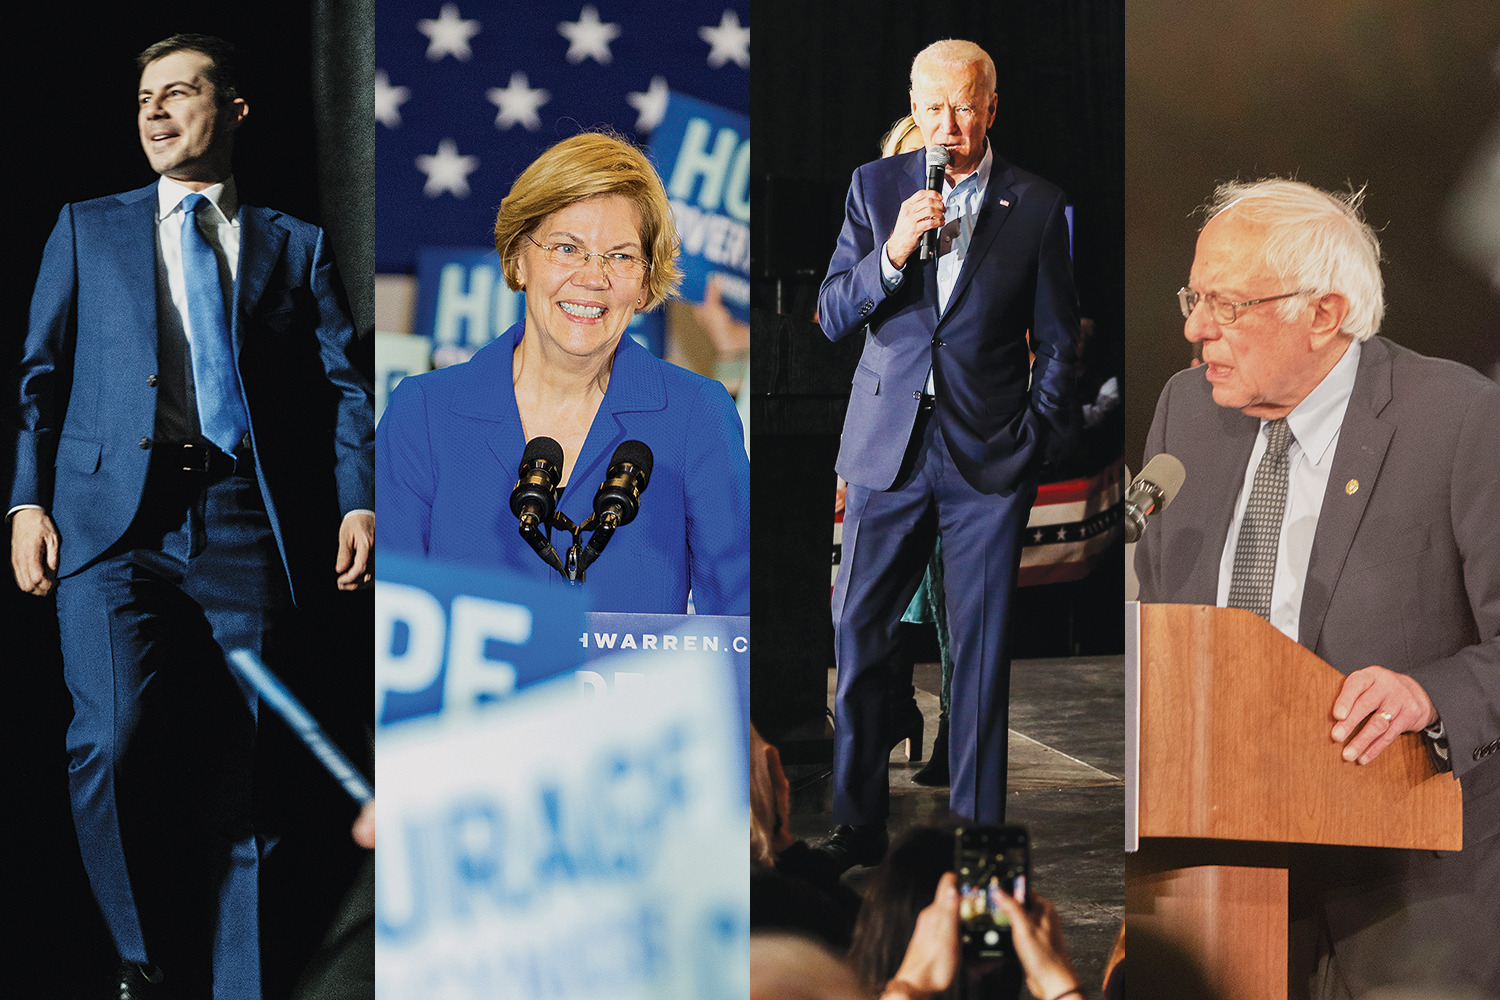 In this diptych, ormer Mayor of South Bend, Indiana, Pete Buttigieg, Sen. Elizabeth Warren, D-Mass., former Vice President Joe Biden, and Sen. Bernie Sanders, I-Vt., address supporters at their watch parties in Des Moines after the caucuses on Tuesday.